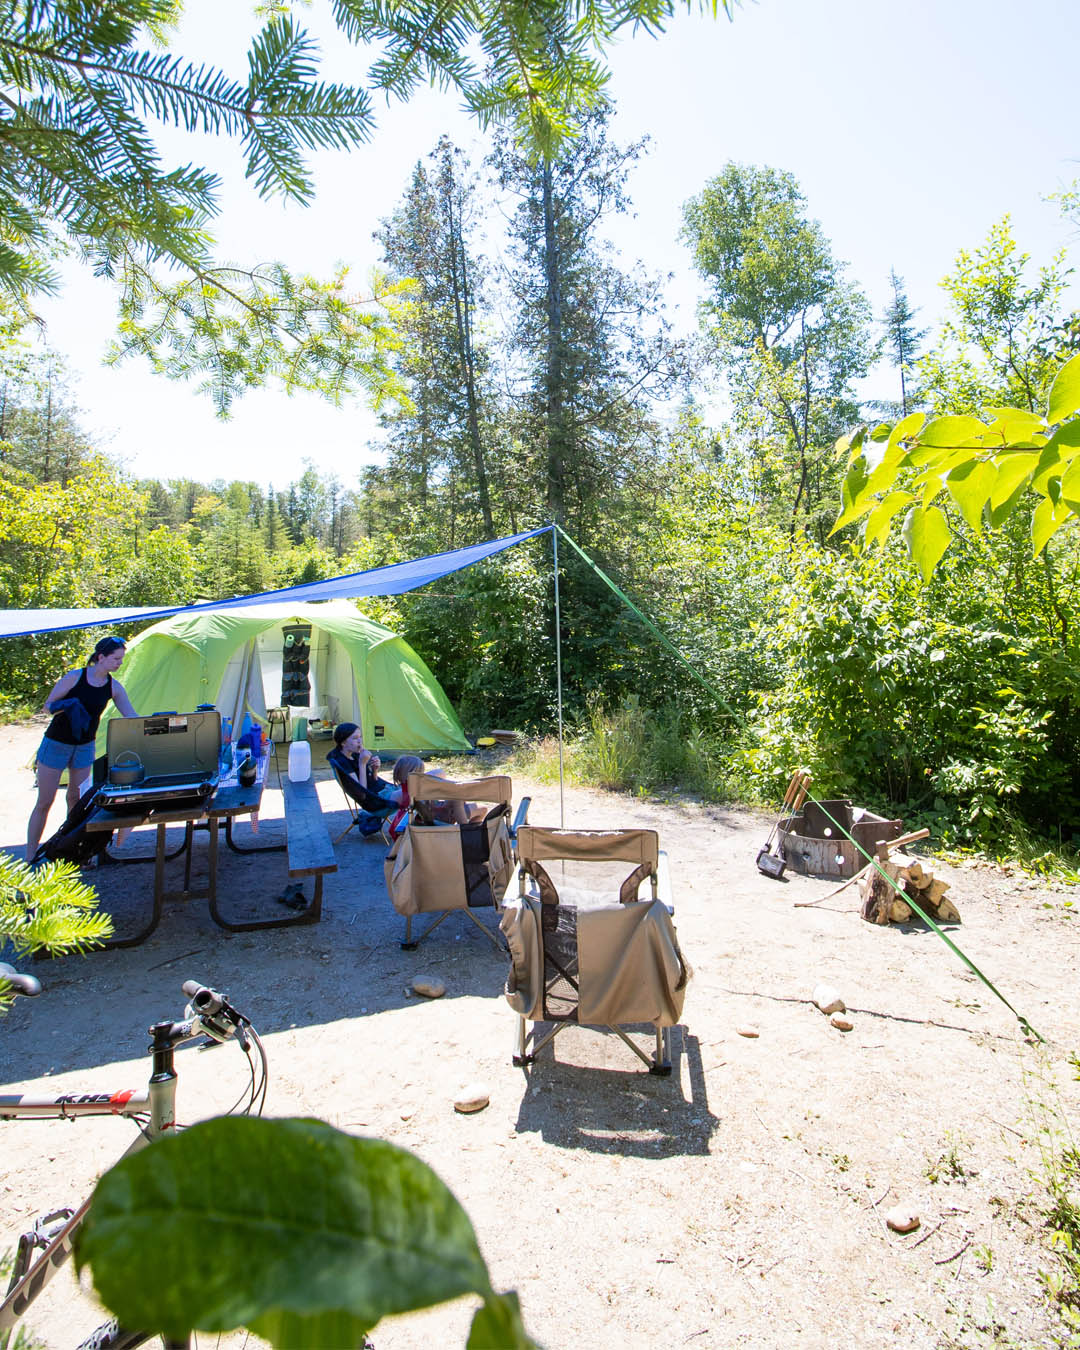 Camping is a great choice for a family summer vacation, but it's definitely something that can be intimidating for a lot of people! Here are some little tricks to get you started on your journey to loving camping!